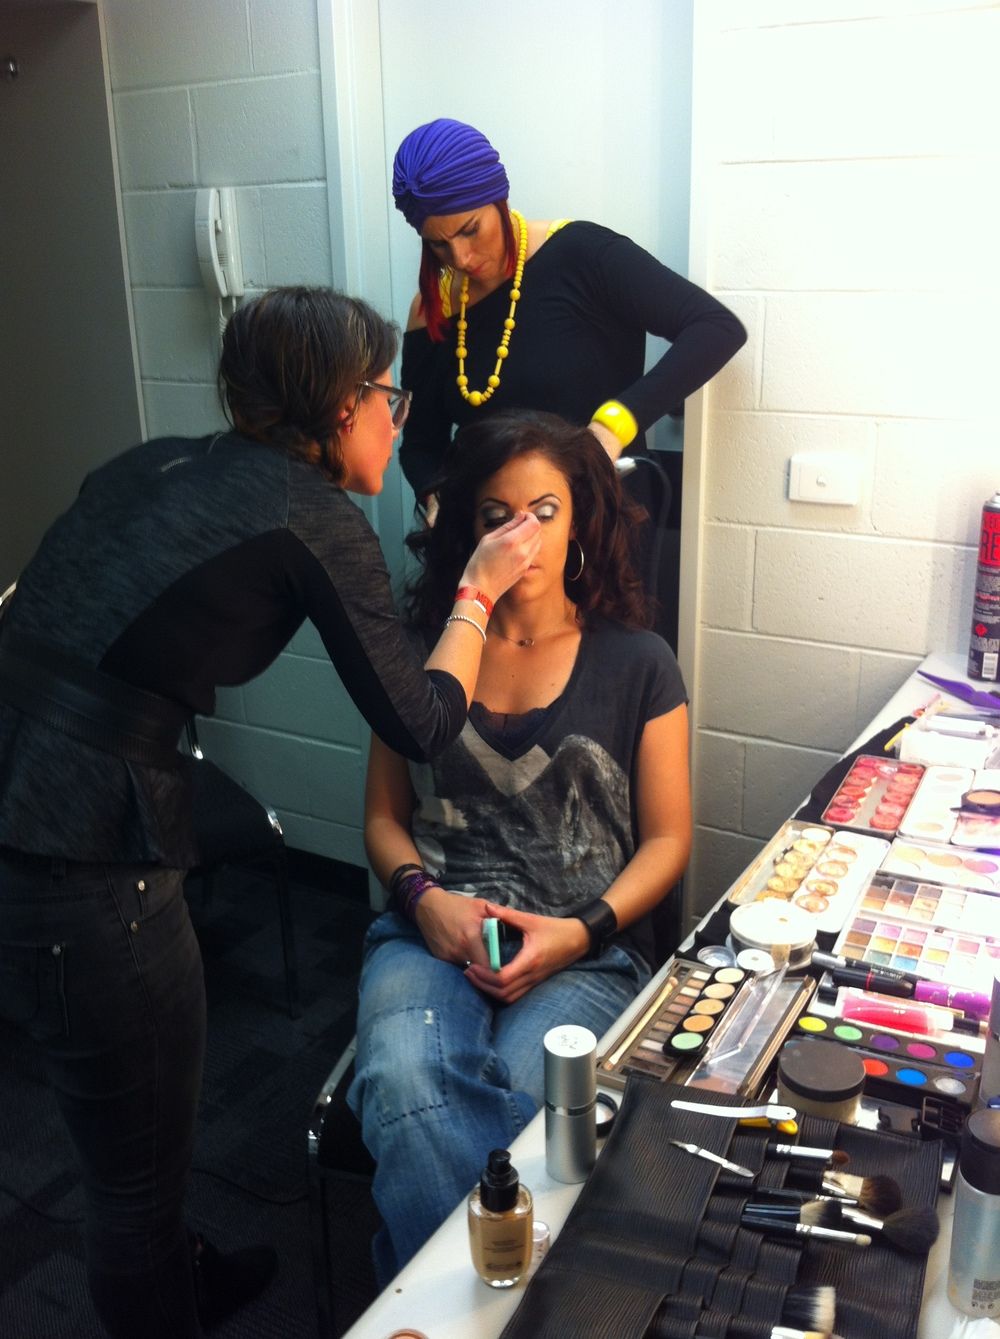 Shula (makeup) and Teresa (hair) working their magic backstage on singer Cindy Alma.